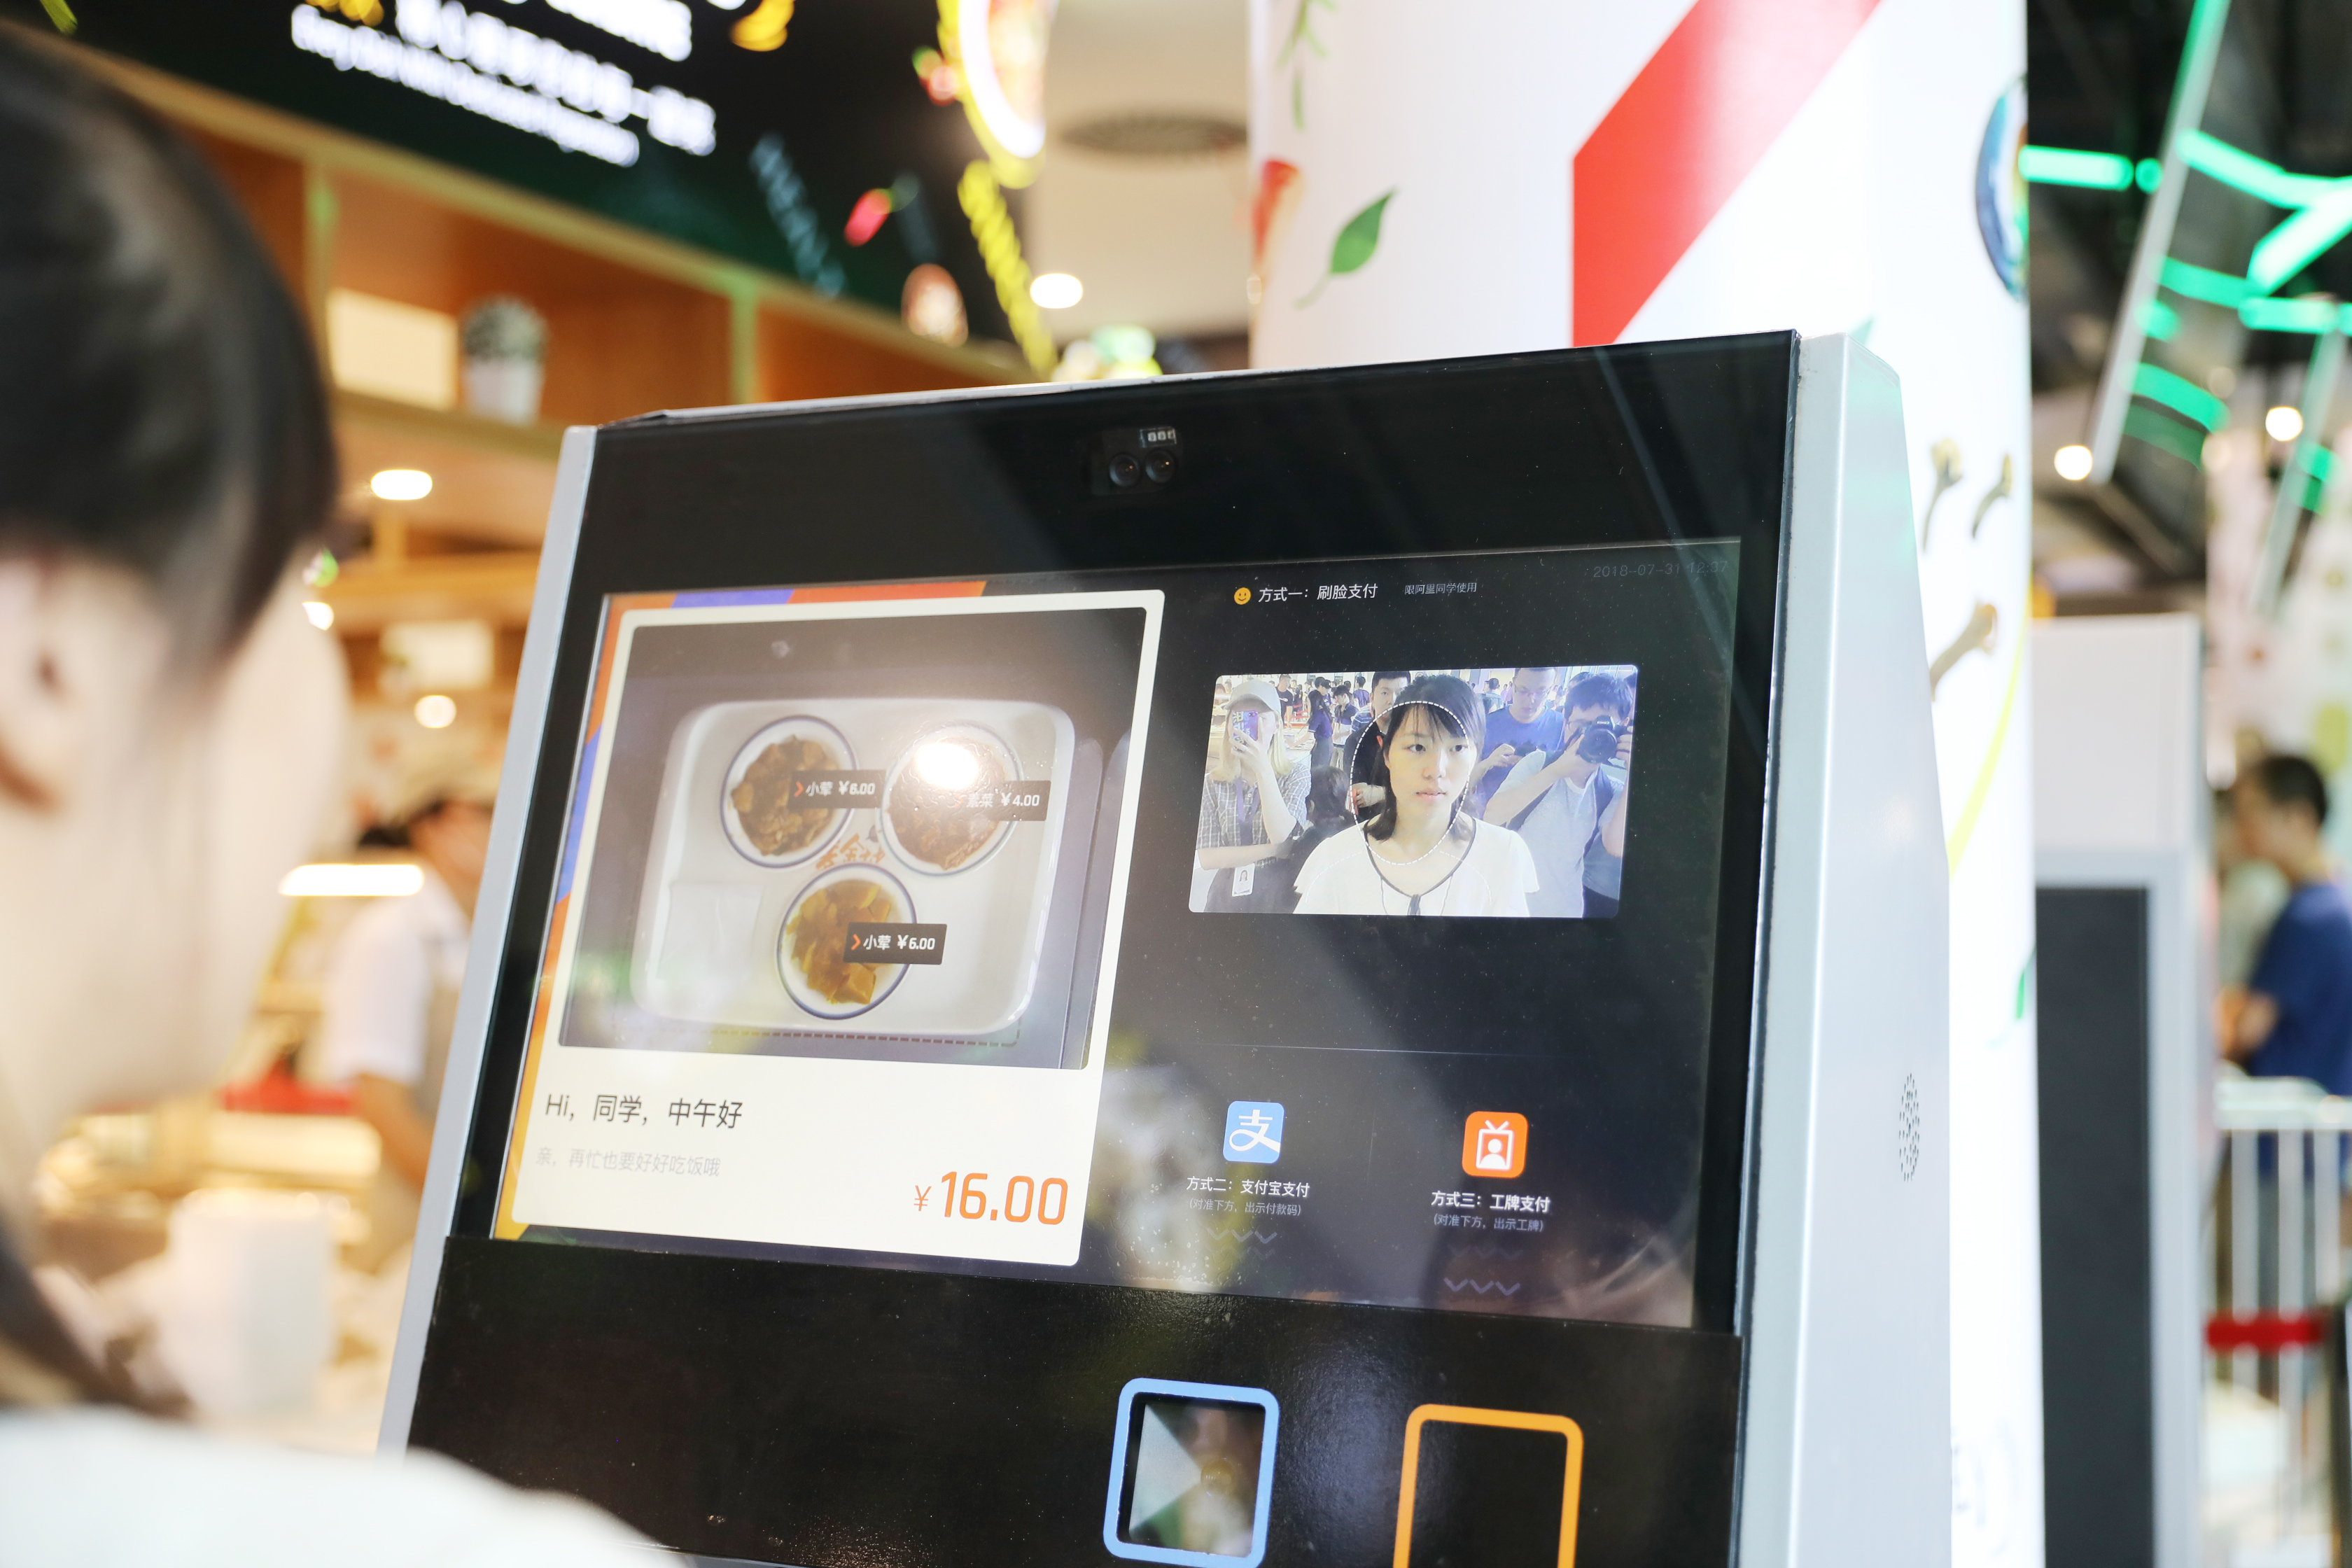 Alibaba Employees Pay For Meals With Face Recognition System